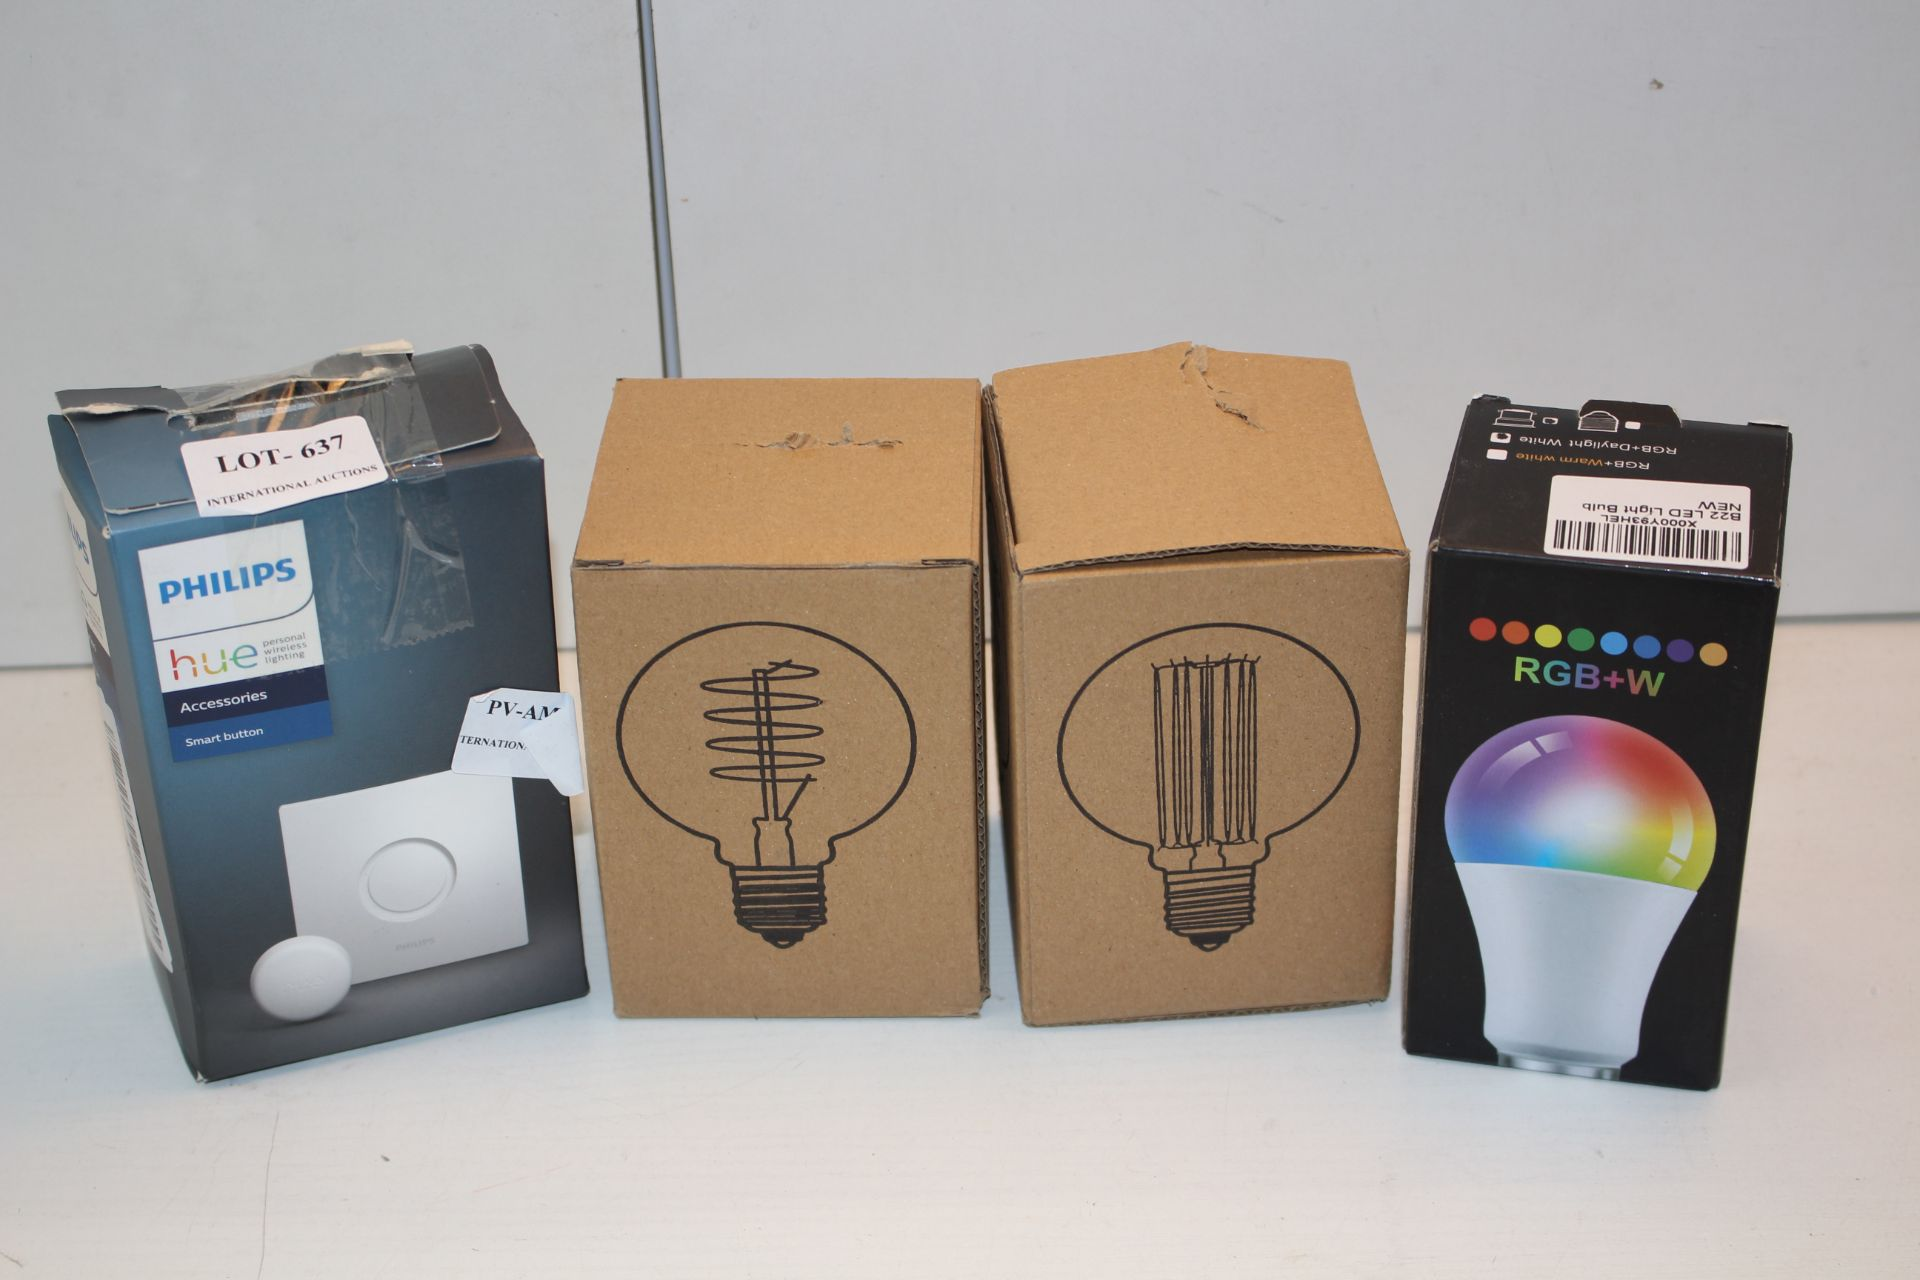 X4 BOXED ITEMS INCLUDING PHILIPS HUE SMART BUTTON AND BULBS Condition ReportAppraisal Available on